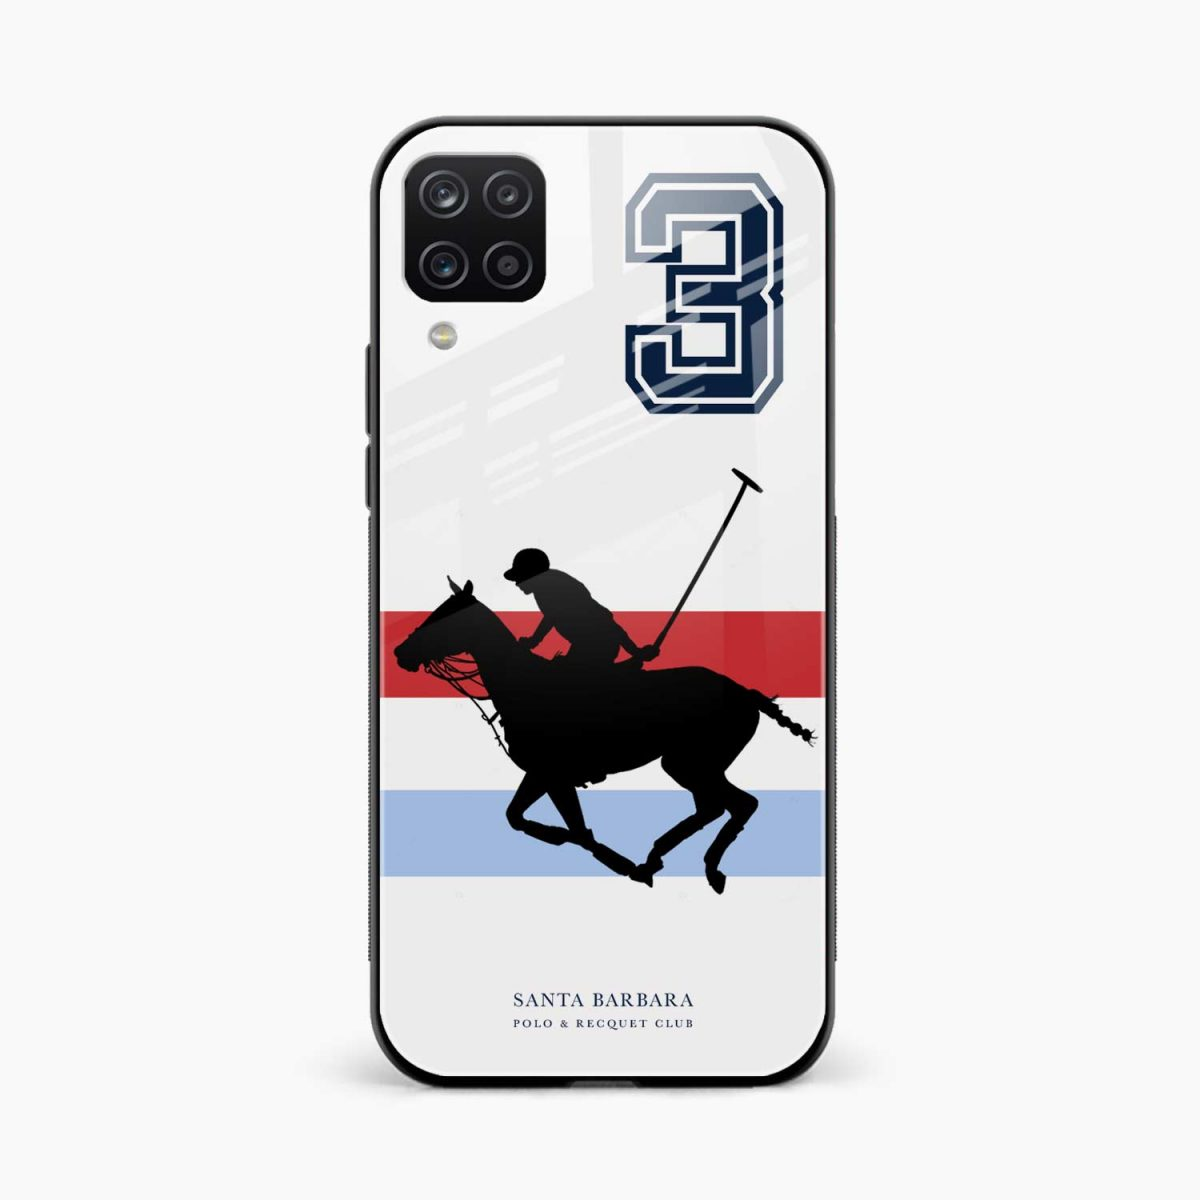 sant barbara polo front view samsung galaxy a12 back cover